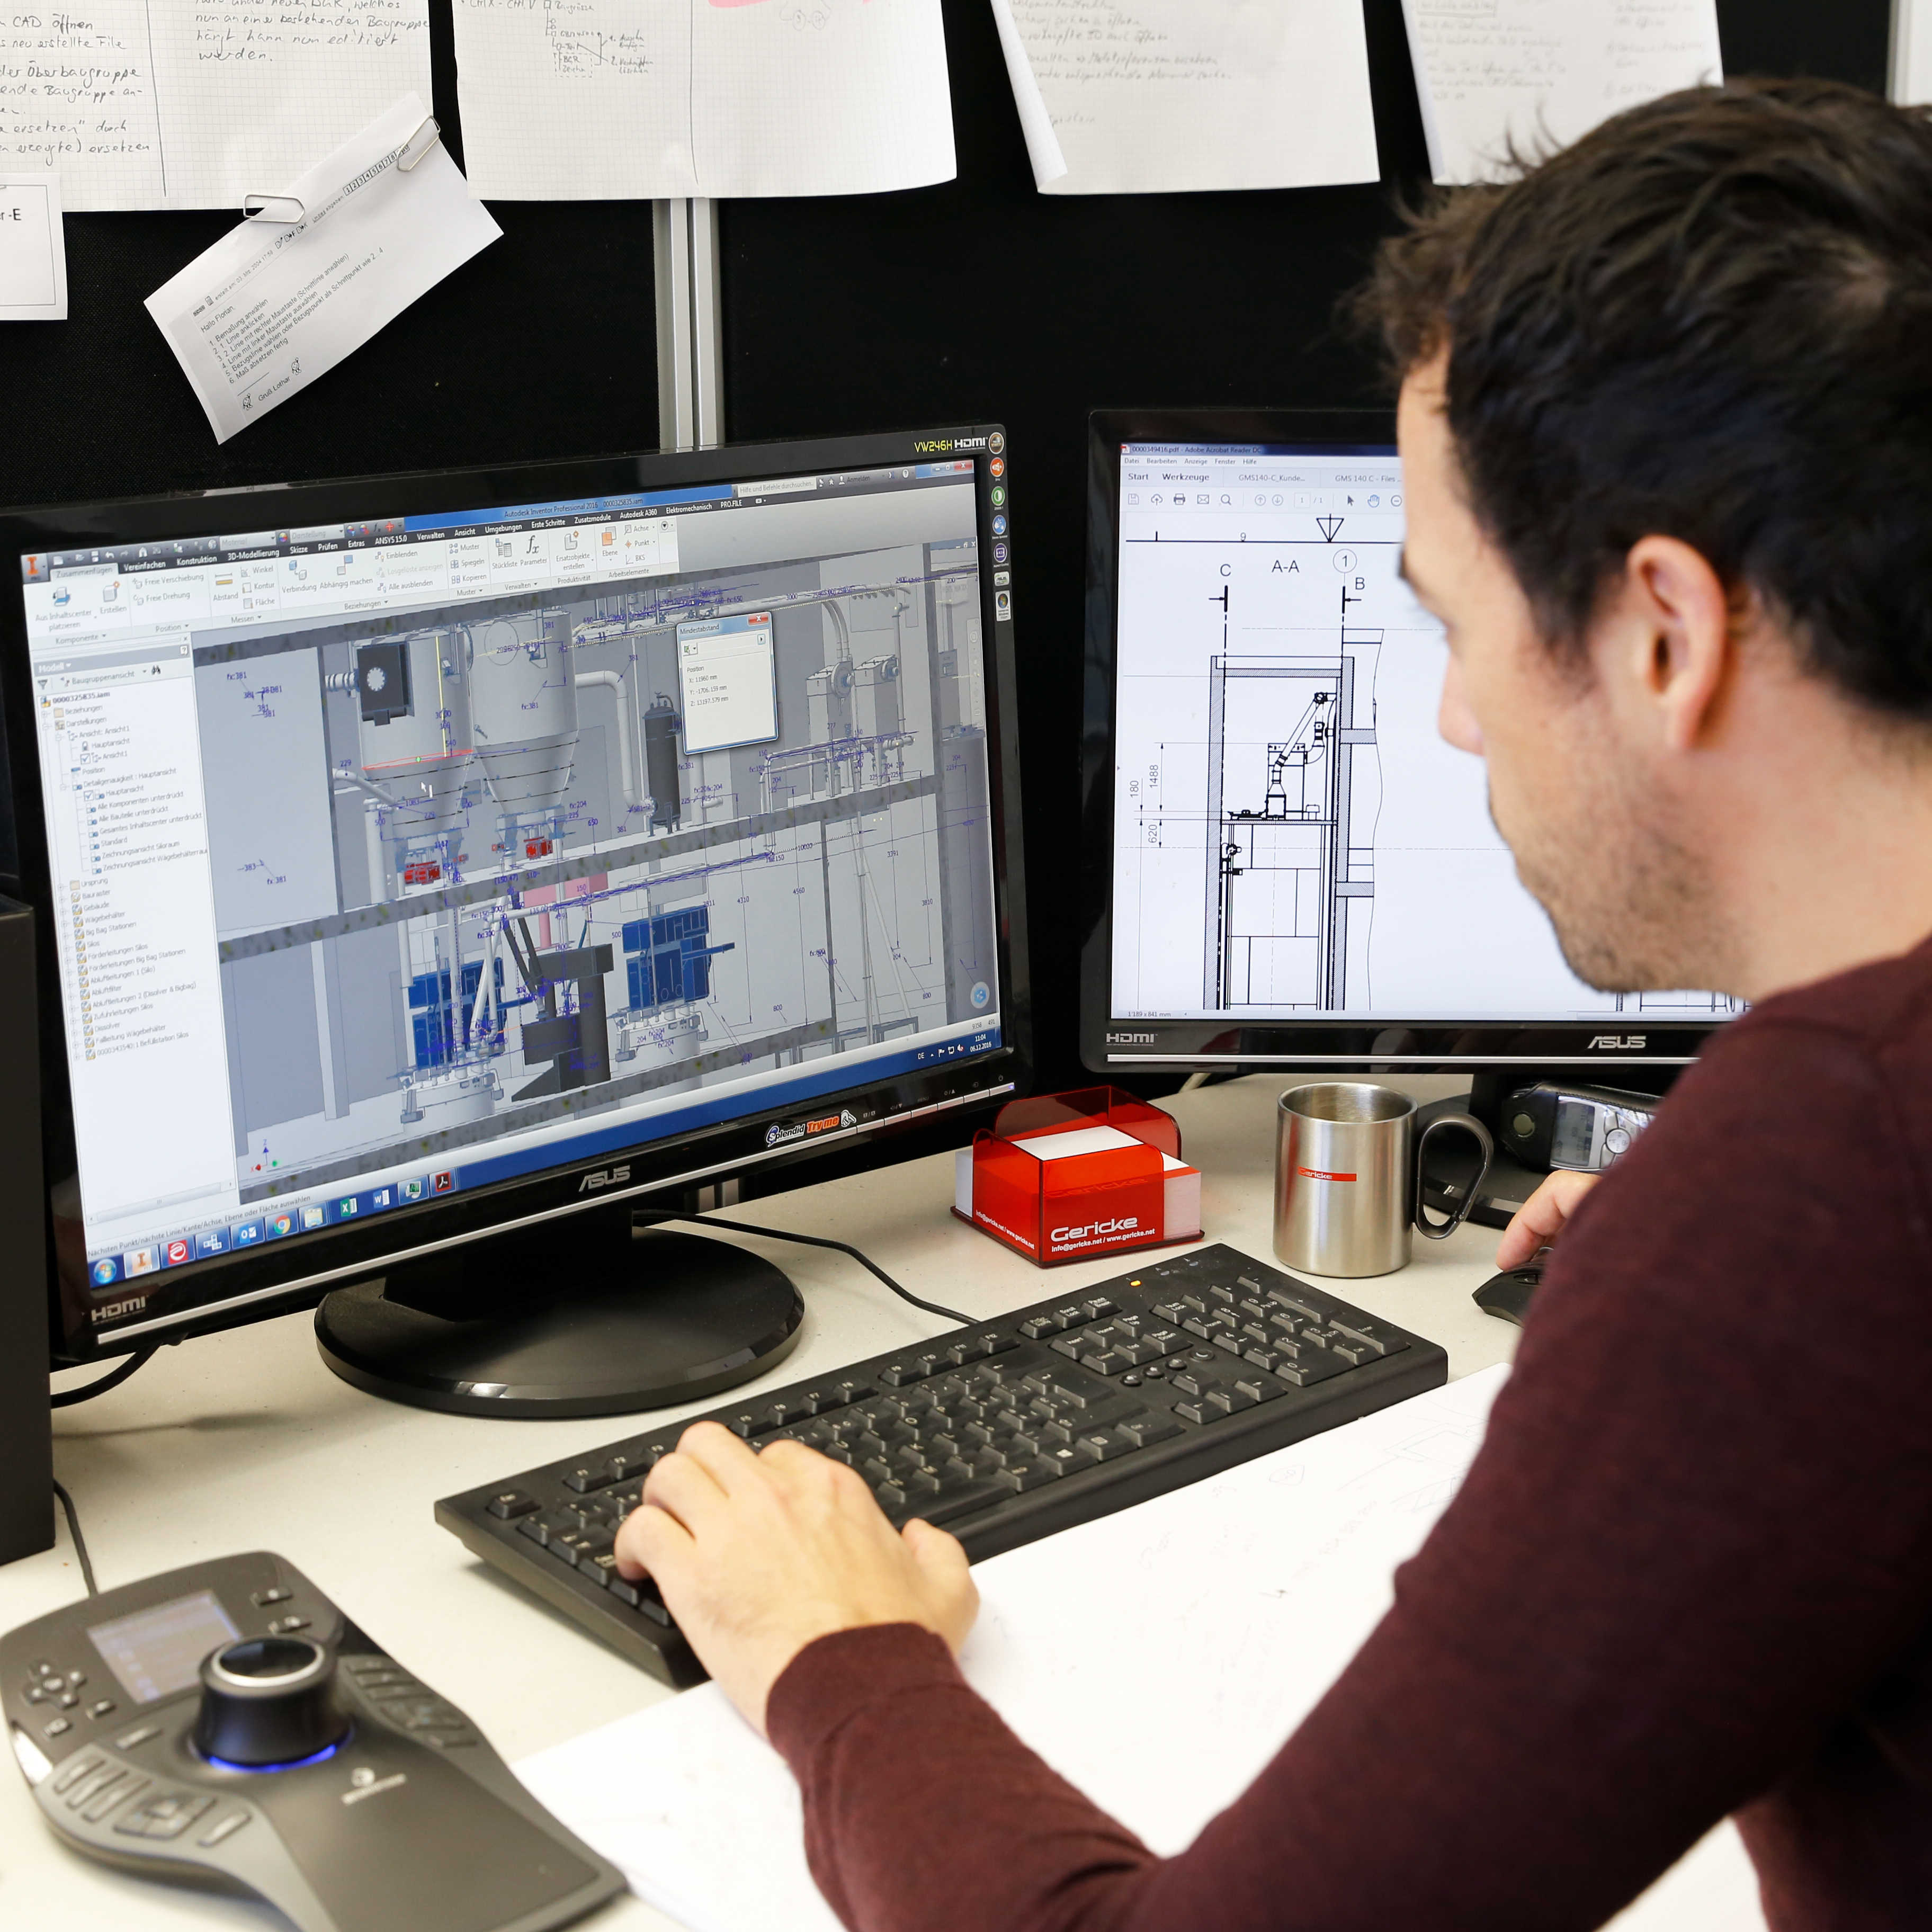 System engineering using 3D CAD